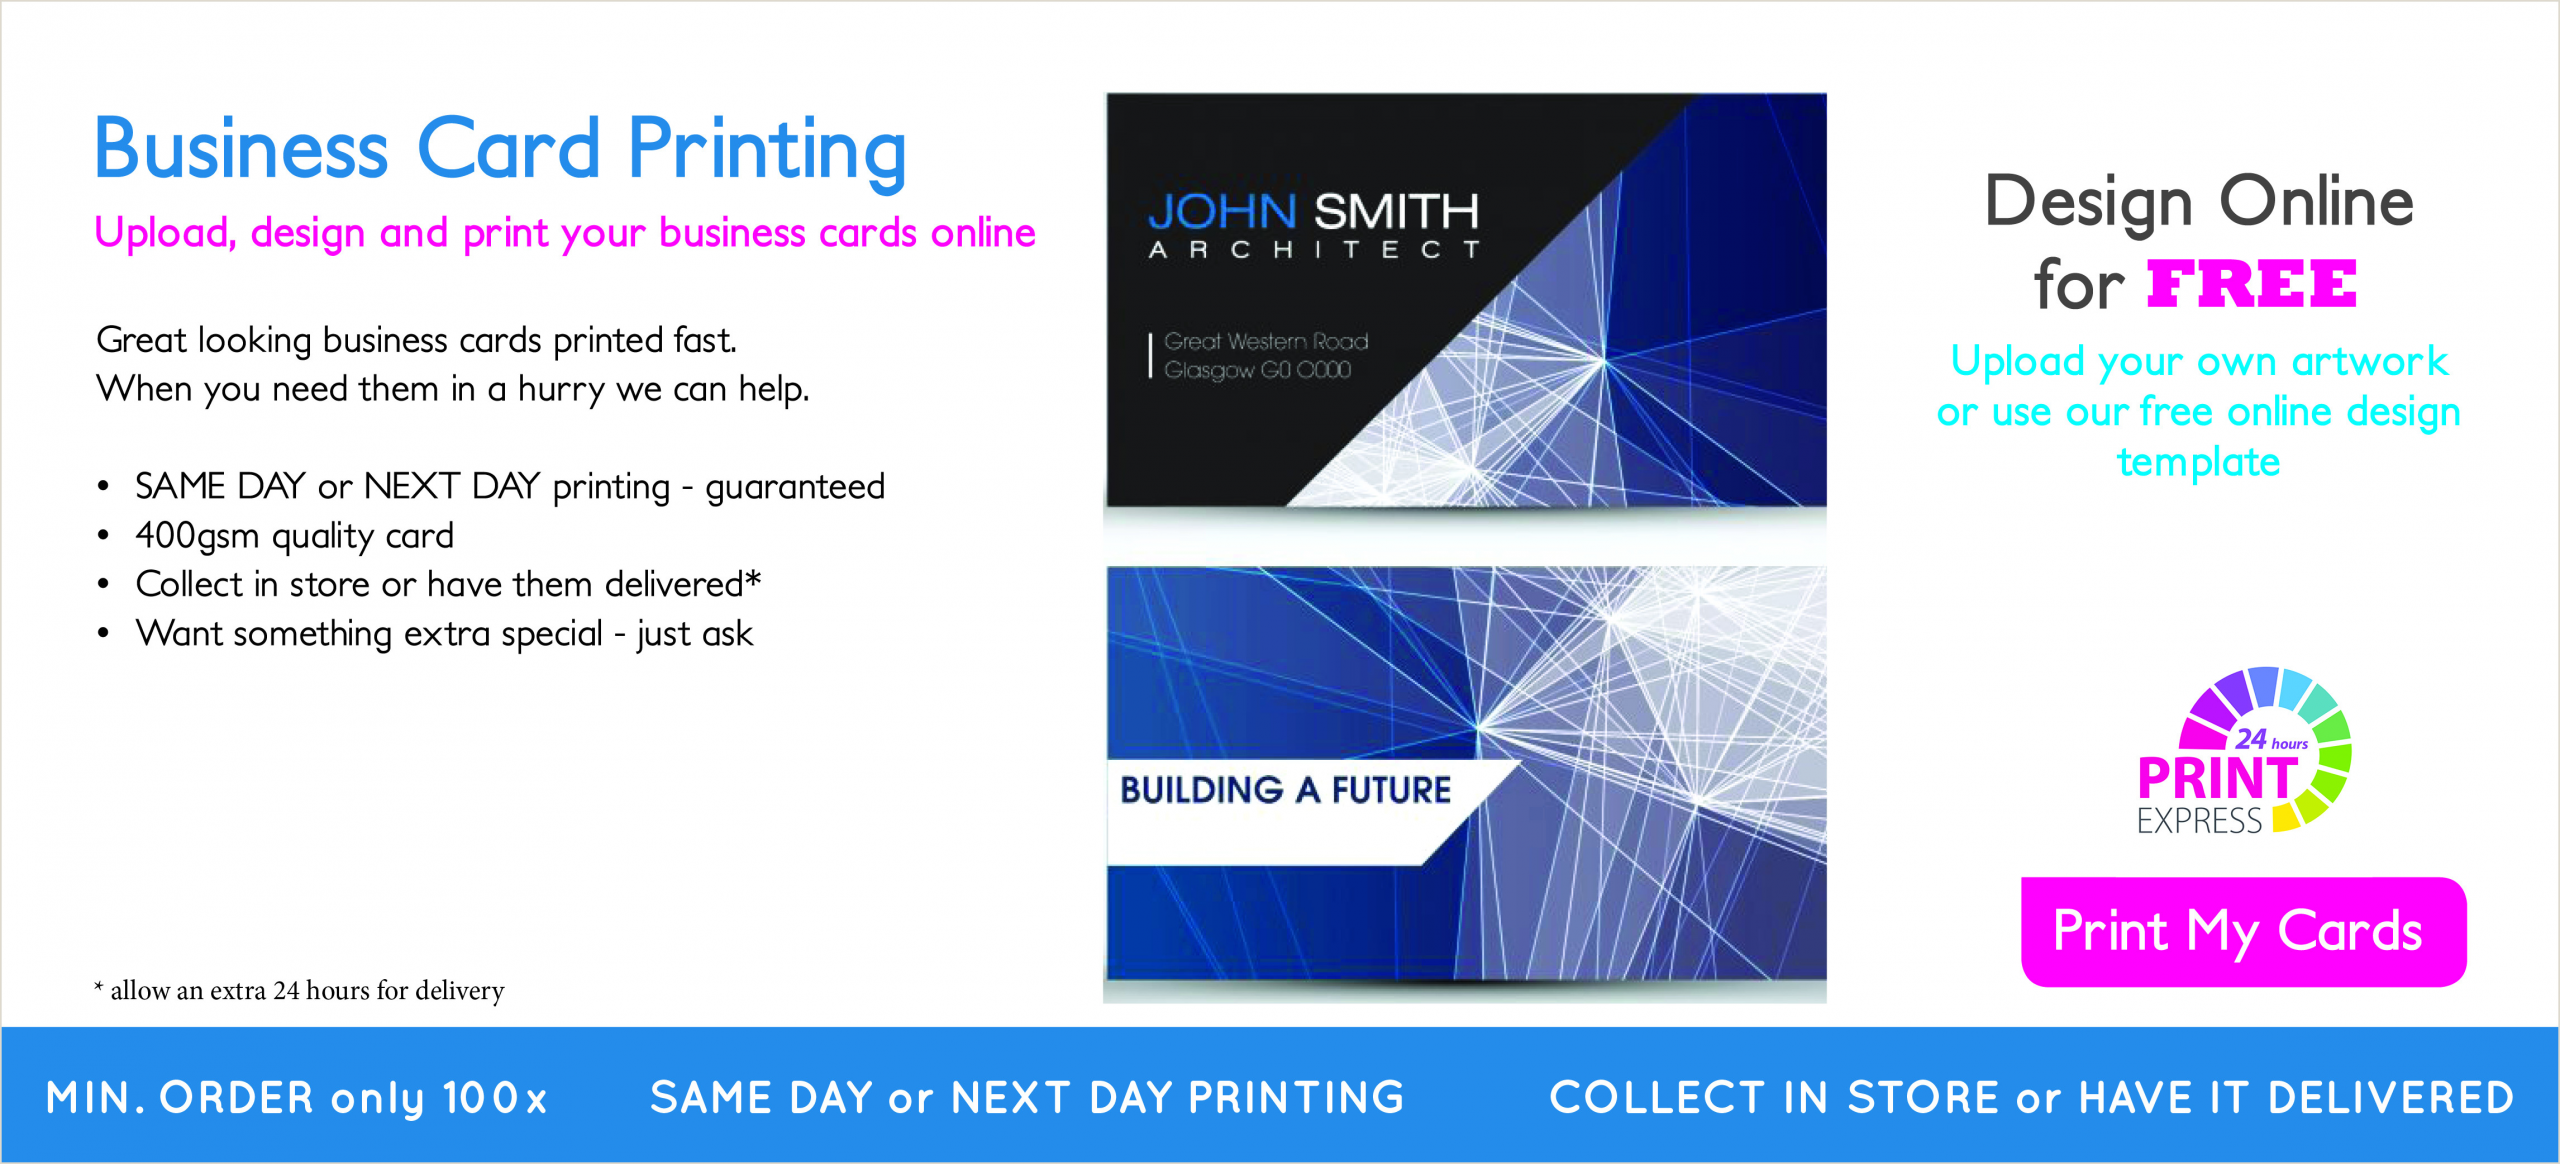 Visiting Card Printing Near Me Self Service Copy & Print Shop Glasgow Same Day Printing